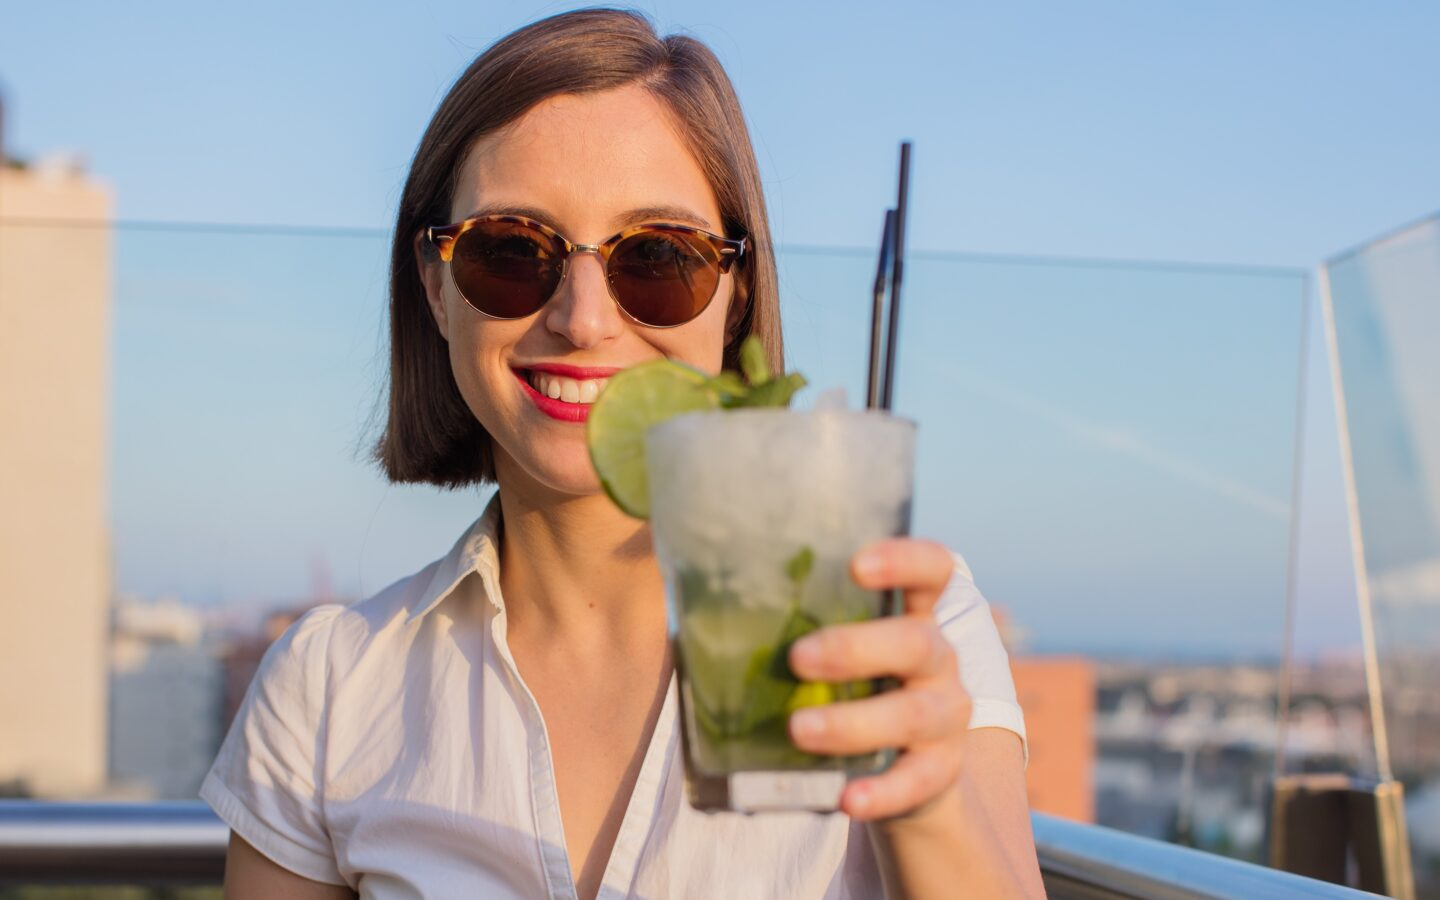 woman in white shirt holding up a mojito drink